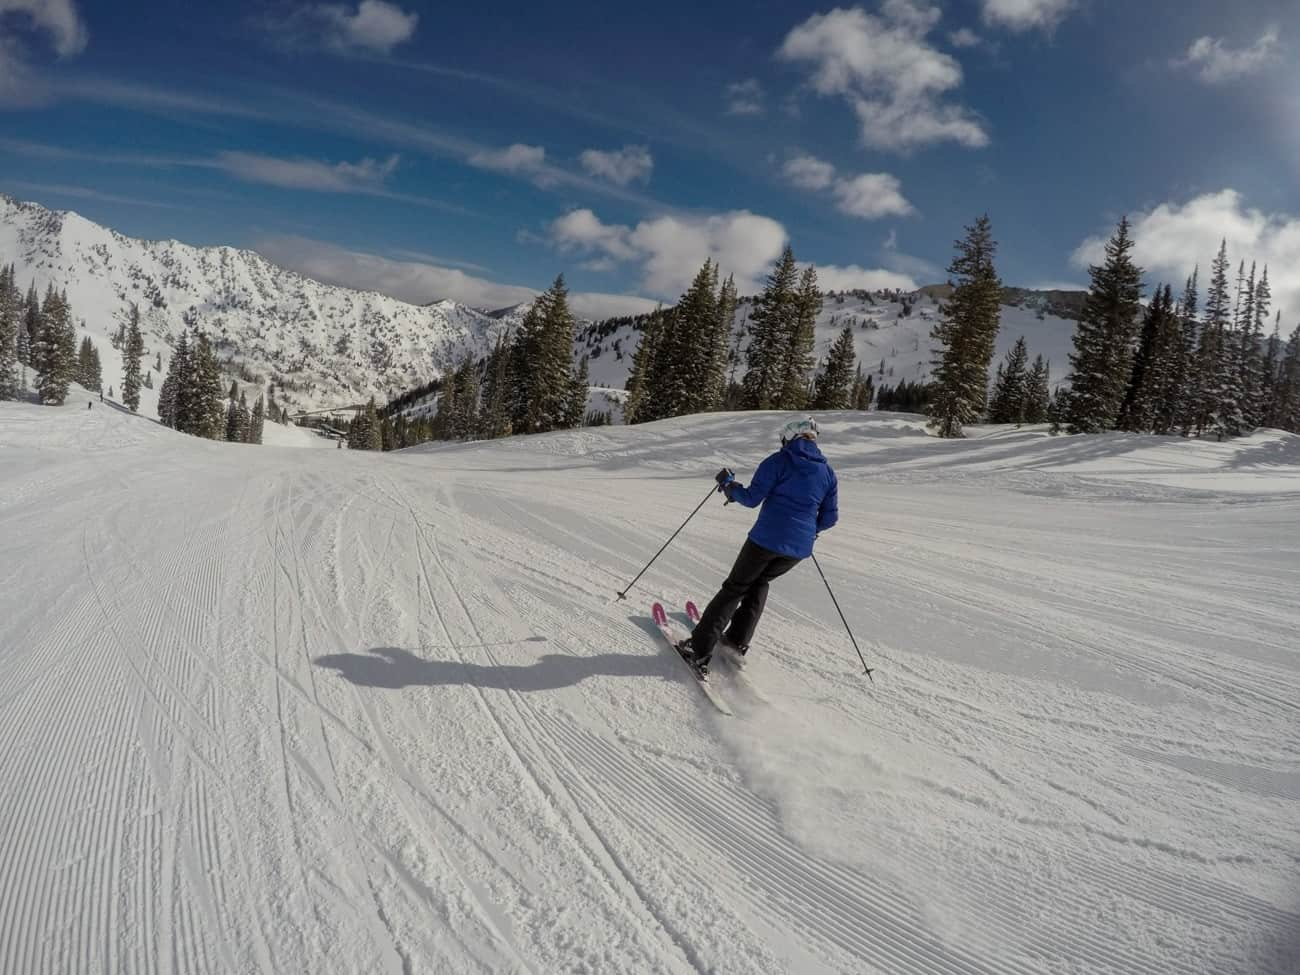 Plan your ski vacation to Alta Ski Resort. Get details on terrain, lodging & dining, rentals & where to get a cold beverage after a day on the slopes.